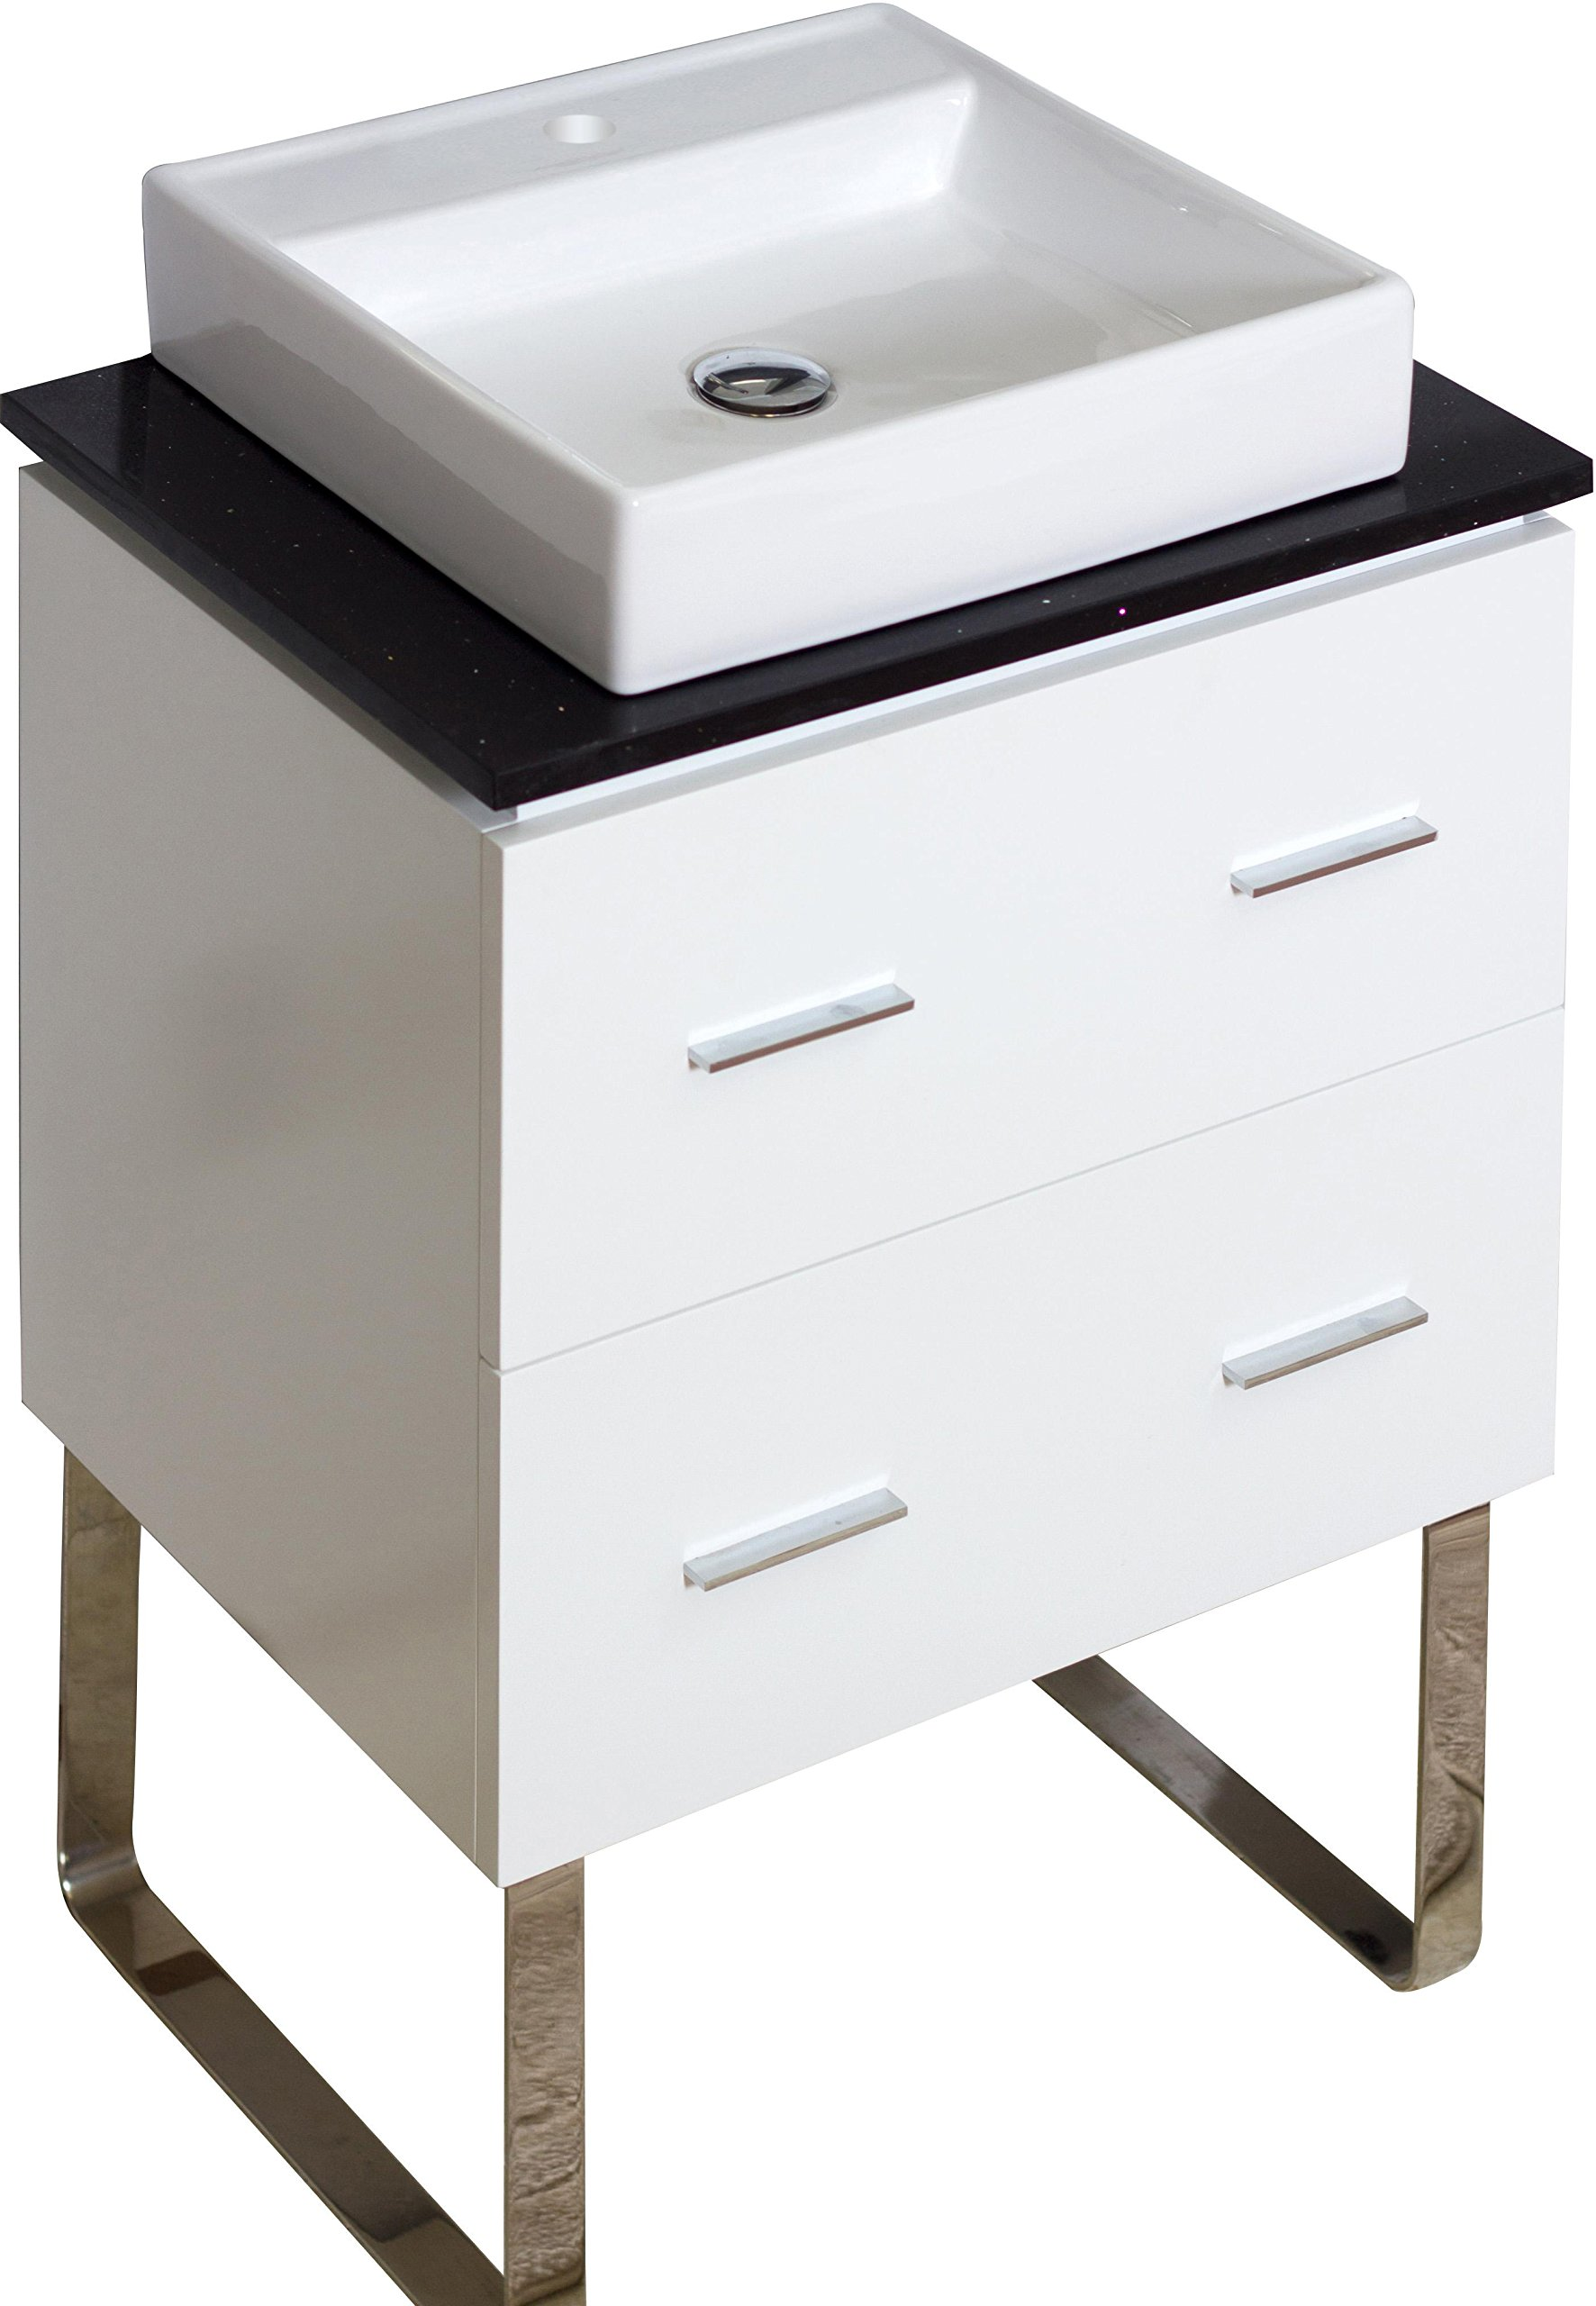 American Imaginations 733   24-Inch W X 18-Inch D Glossy White Vanity with Black Quartz Top and Square White Vessel for Single Hole Deck Mount Faucet